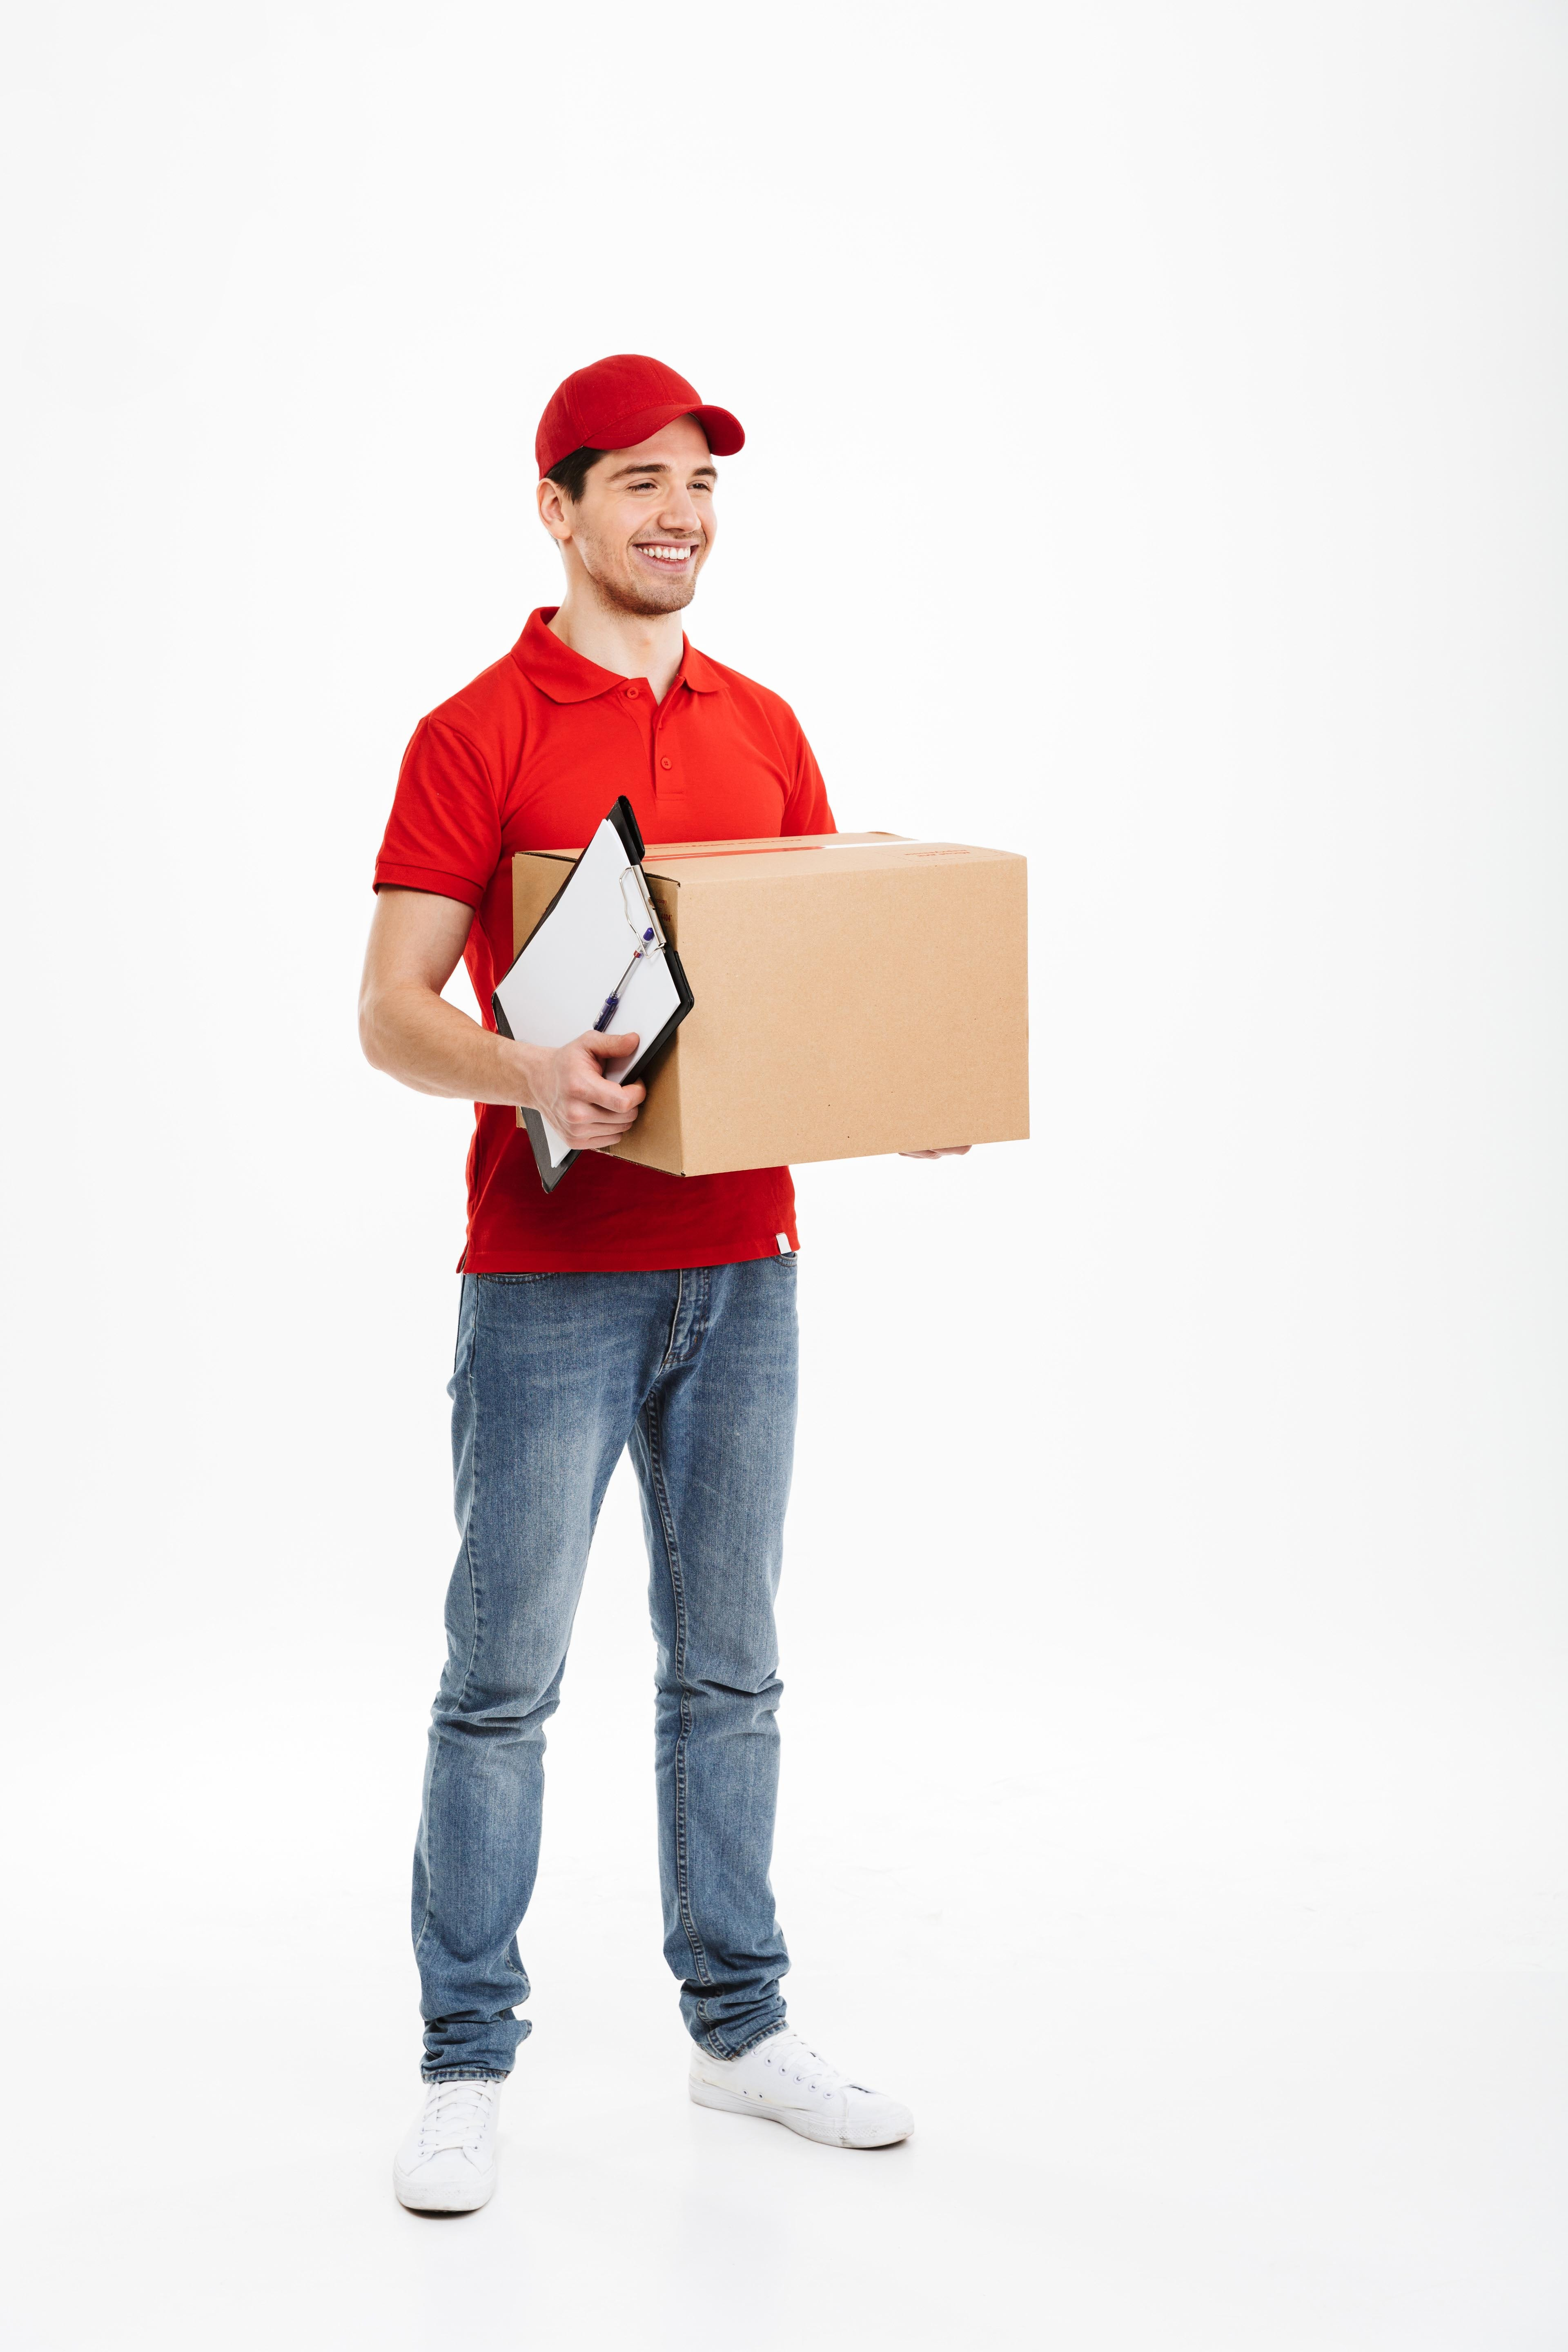 Links courier delivery services